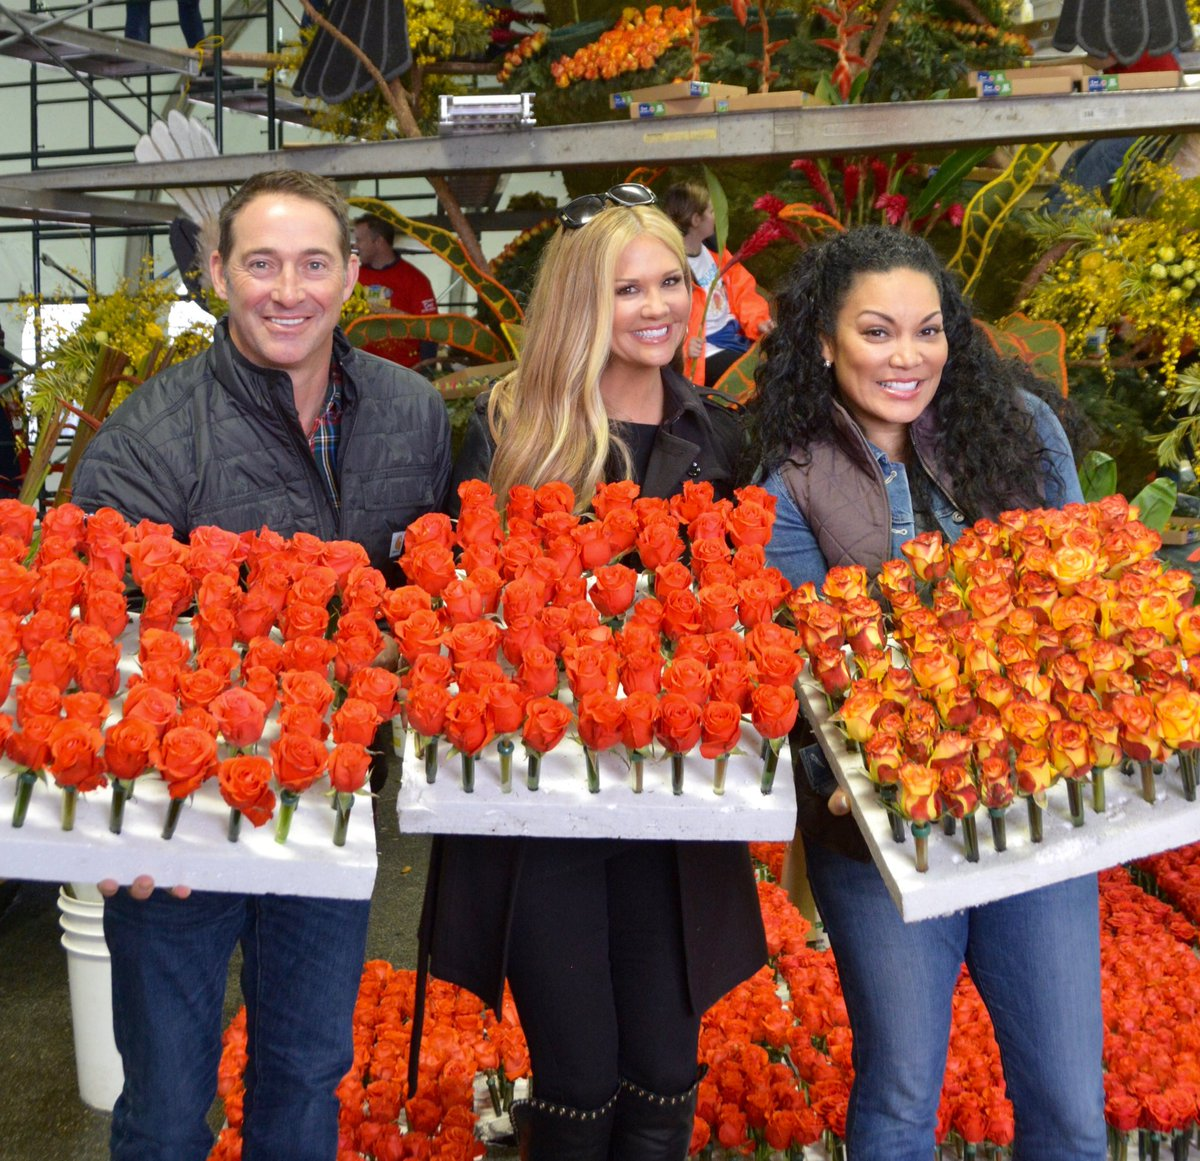 Watch the Rose Parade LIVE TODAY at 11amET/8amPT on @HGTV hosted by me @nancyodell and @joshtempletv #HGTVroseParade https://t.co/pHS8VA1mMu